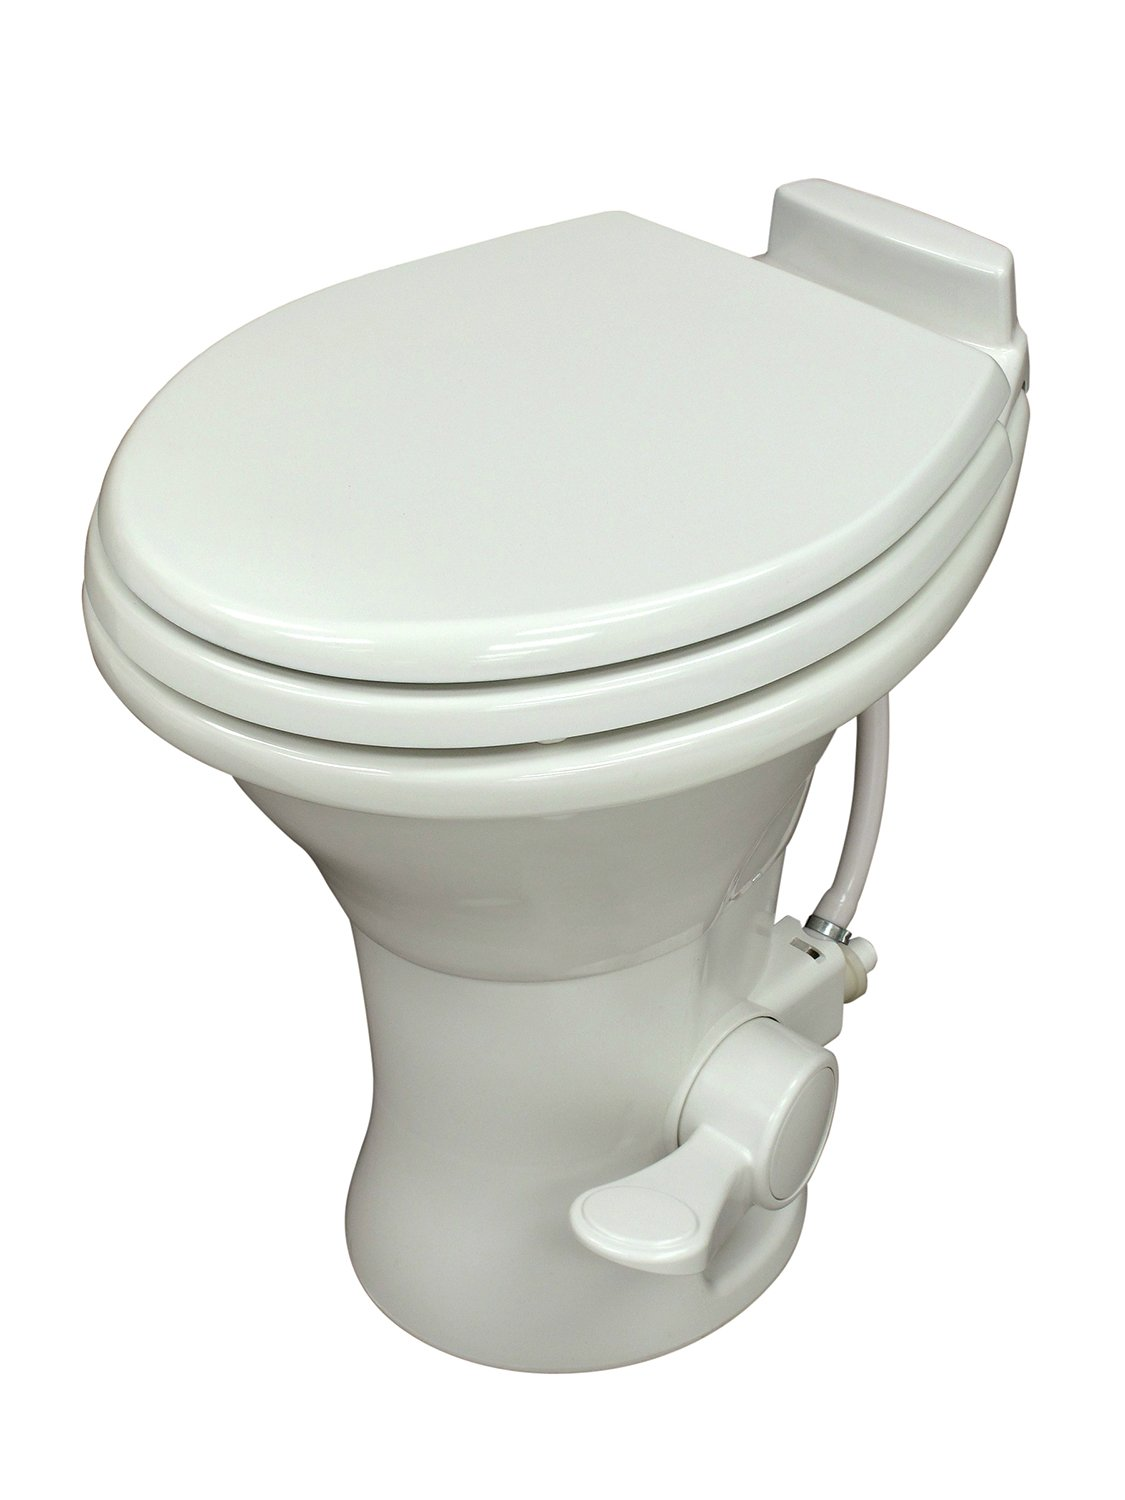 Dometic 310 Series Gravity Flush RV Toilet